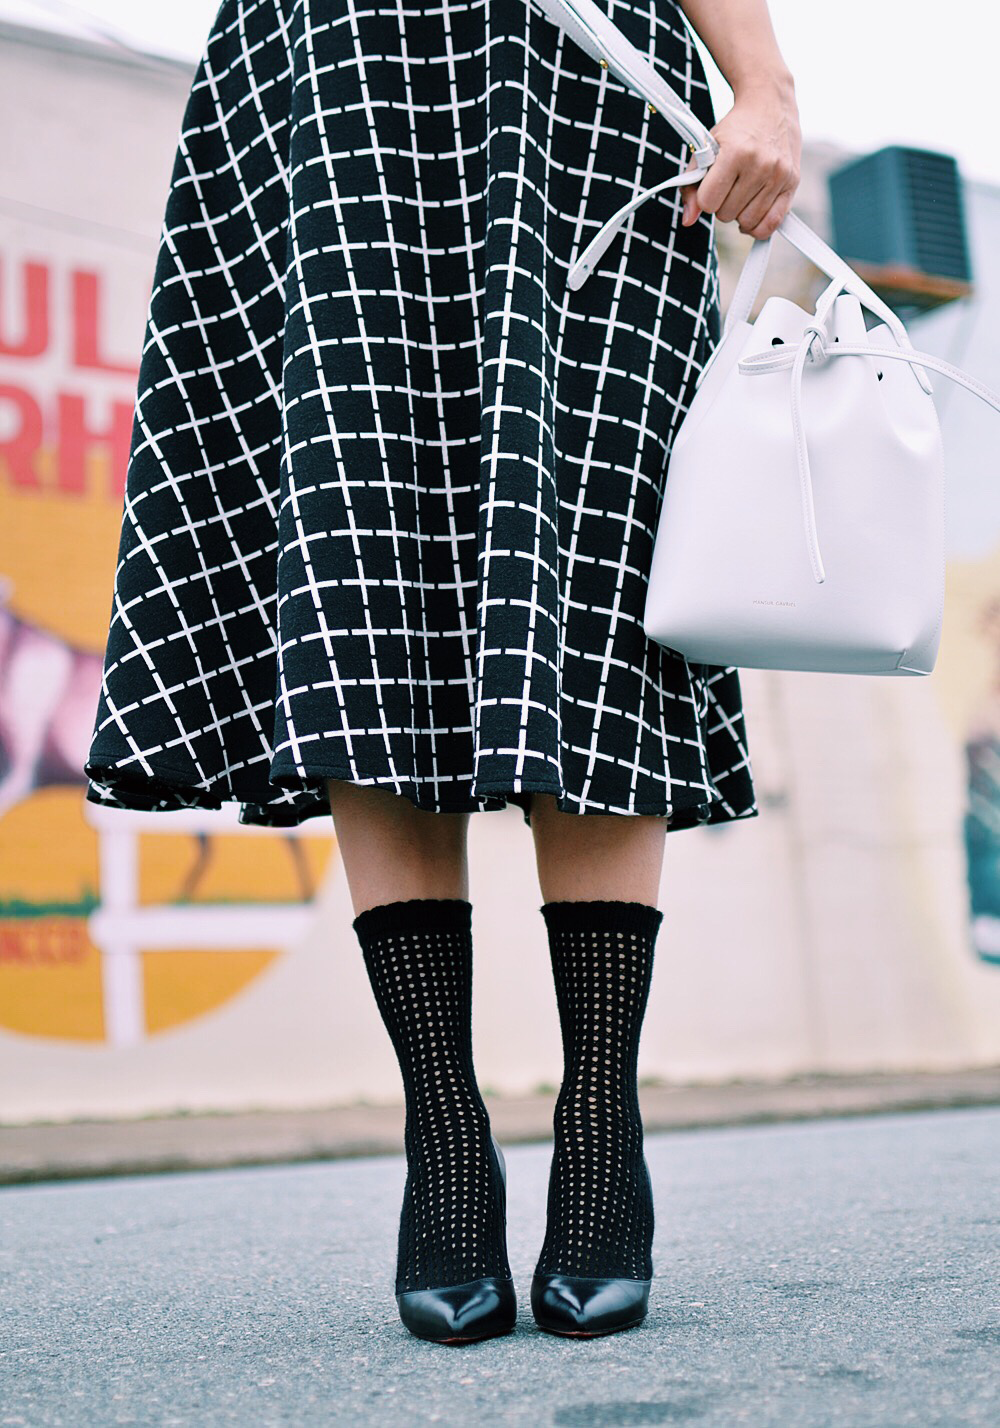 Socks with heels street style